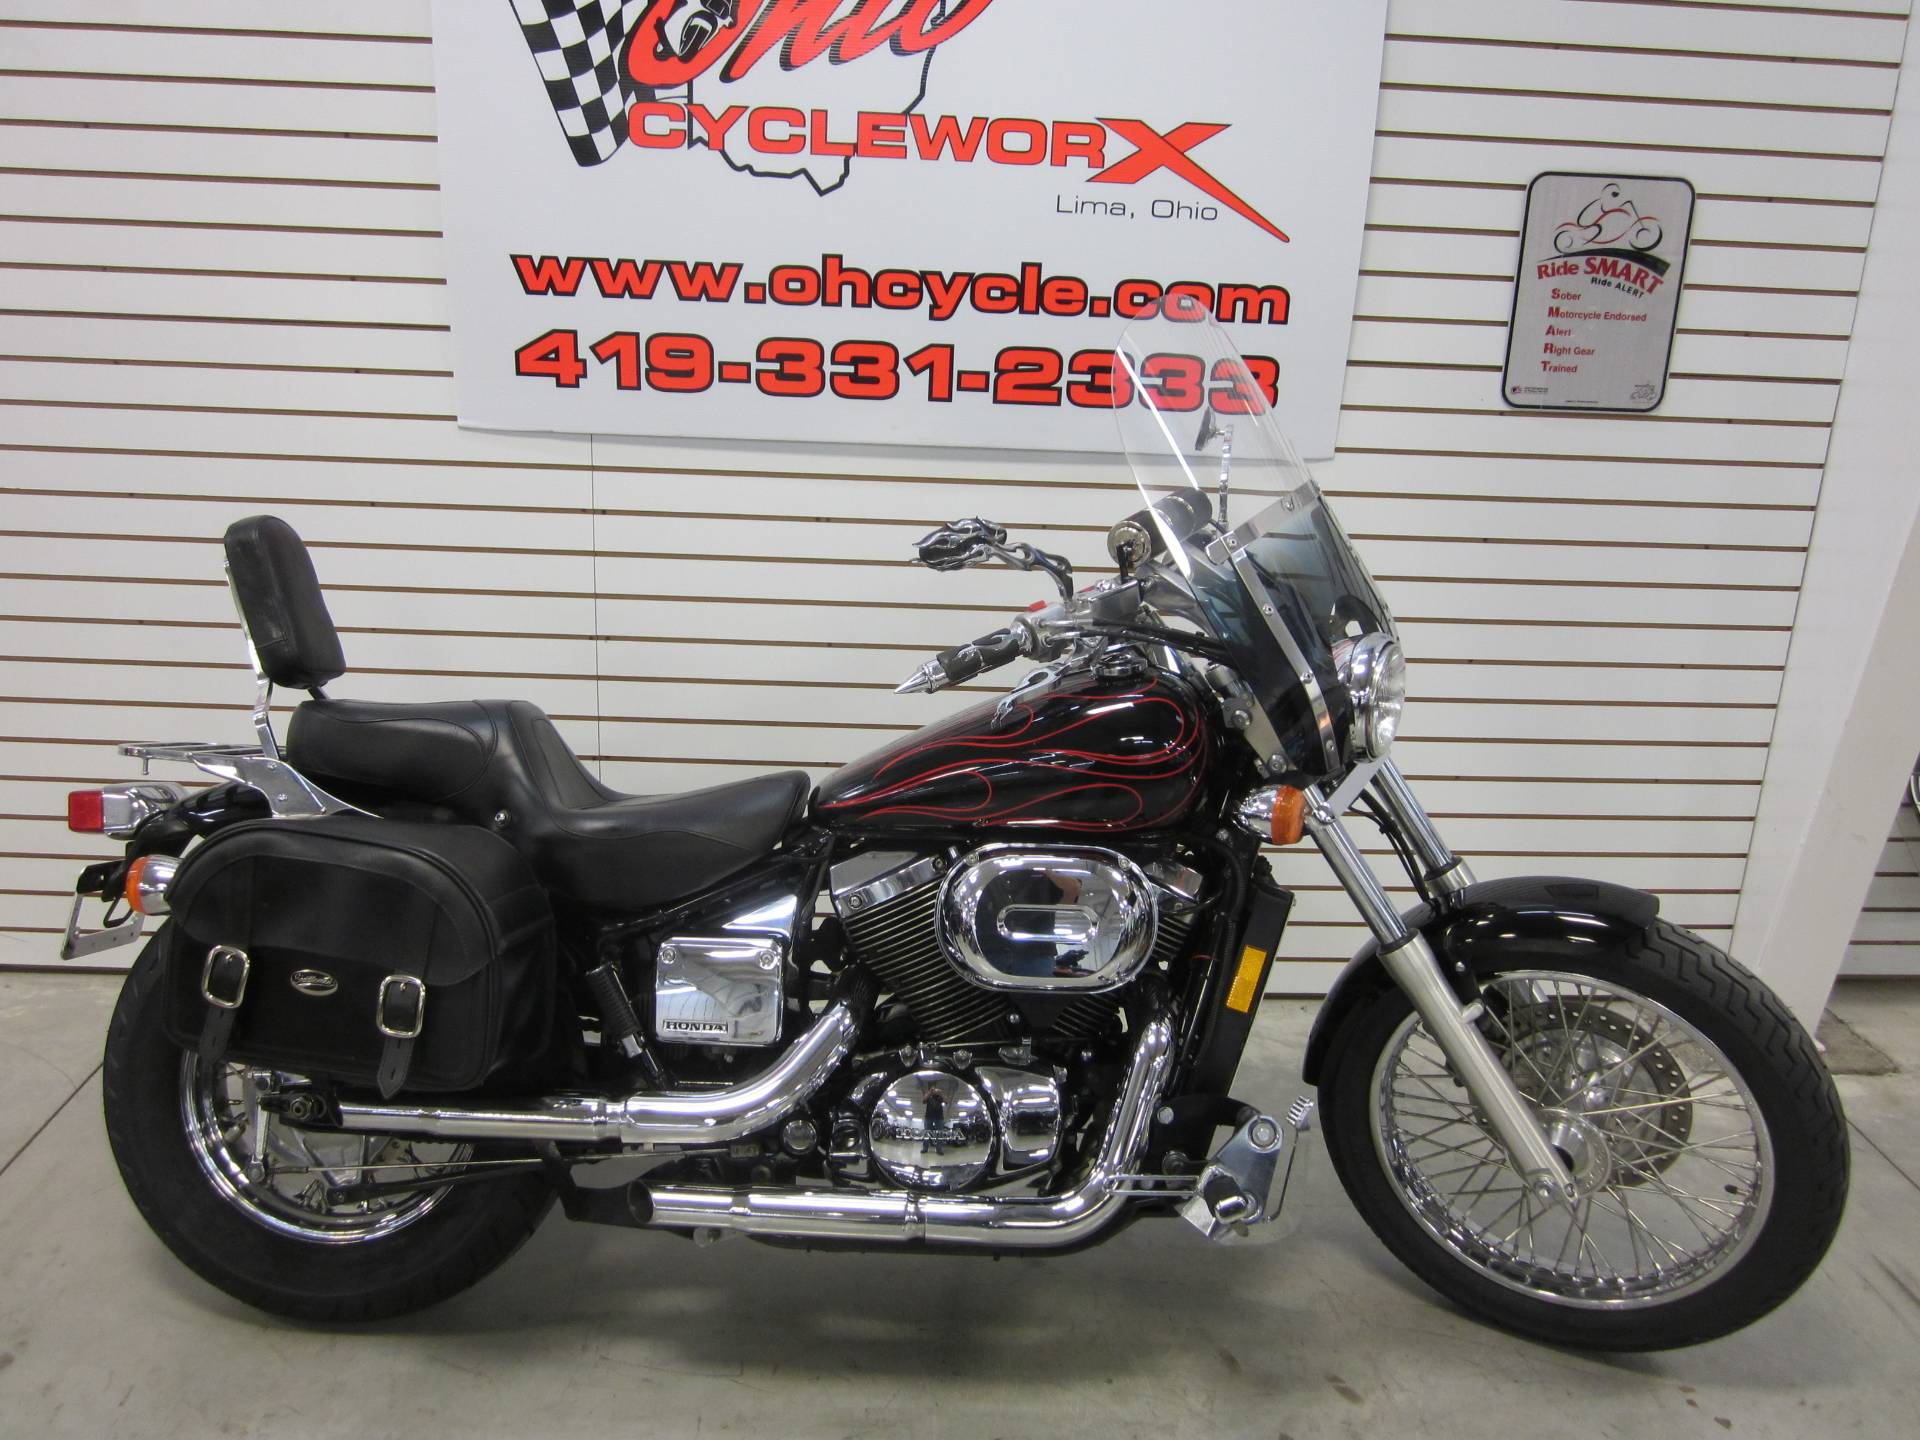 2007 Honda Spirit 750 in Lima, Ohio - Photo 2